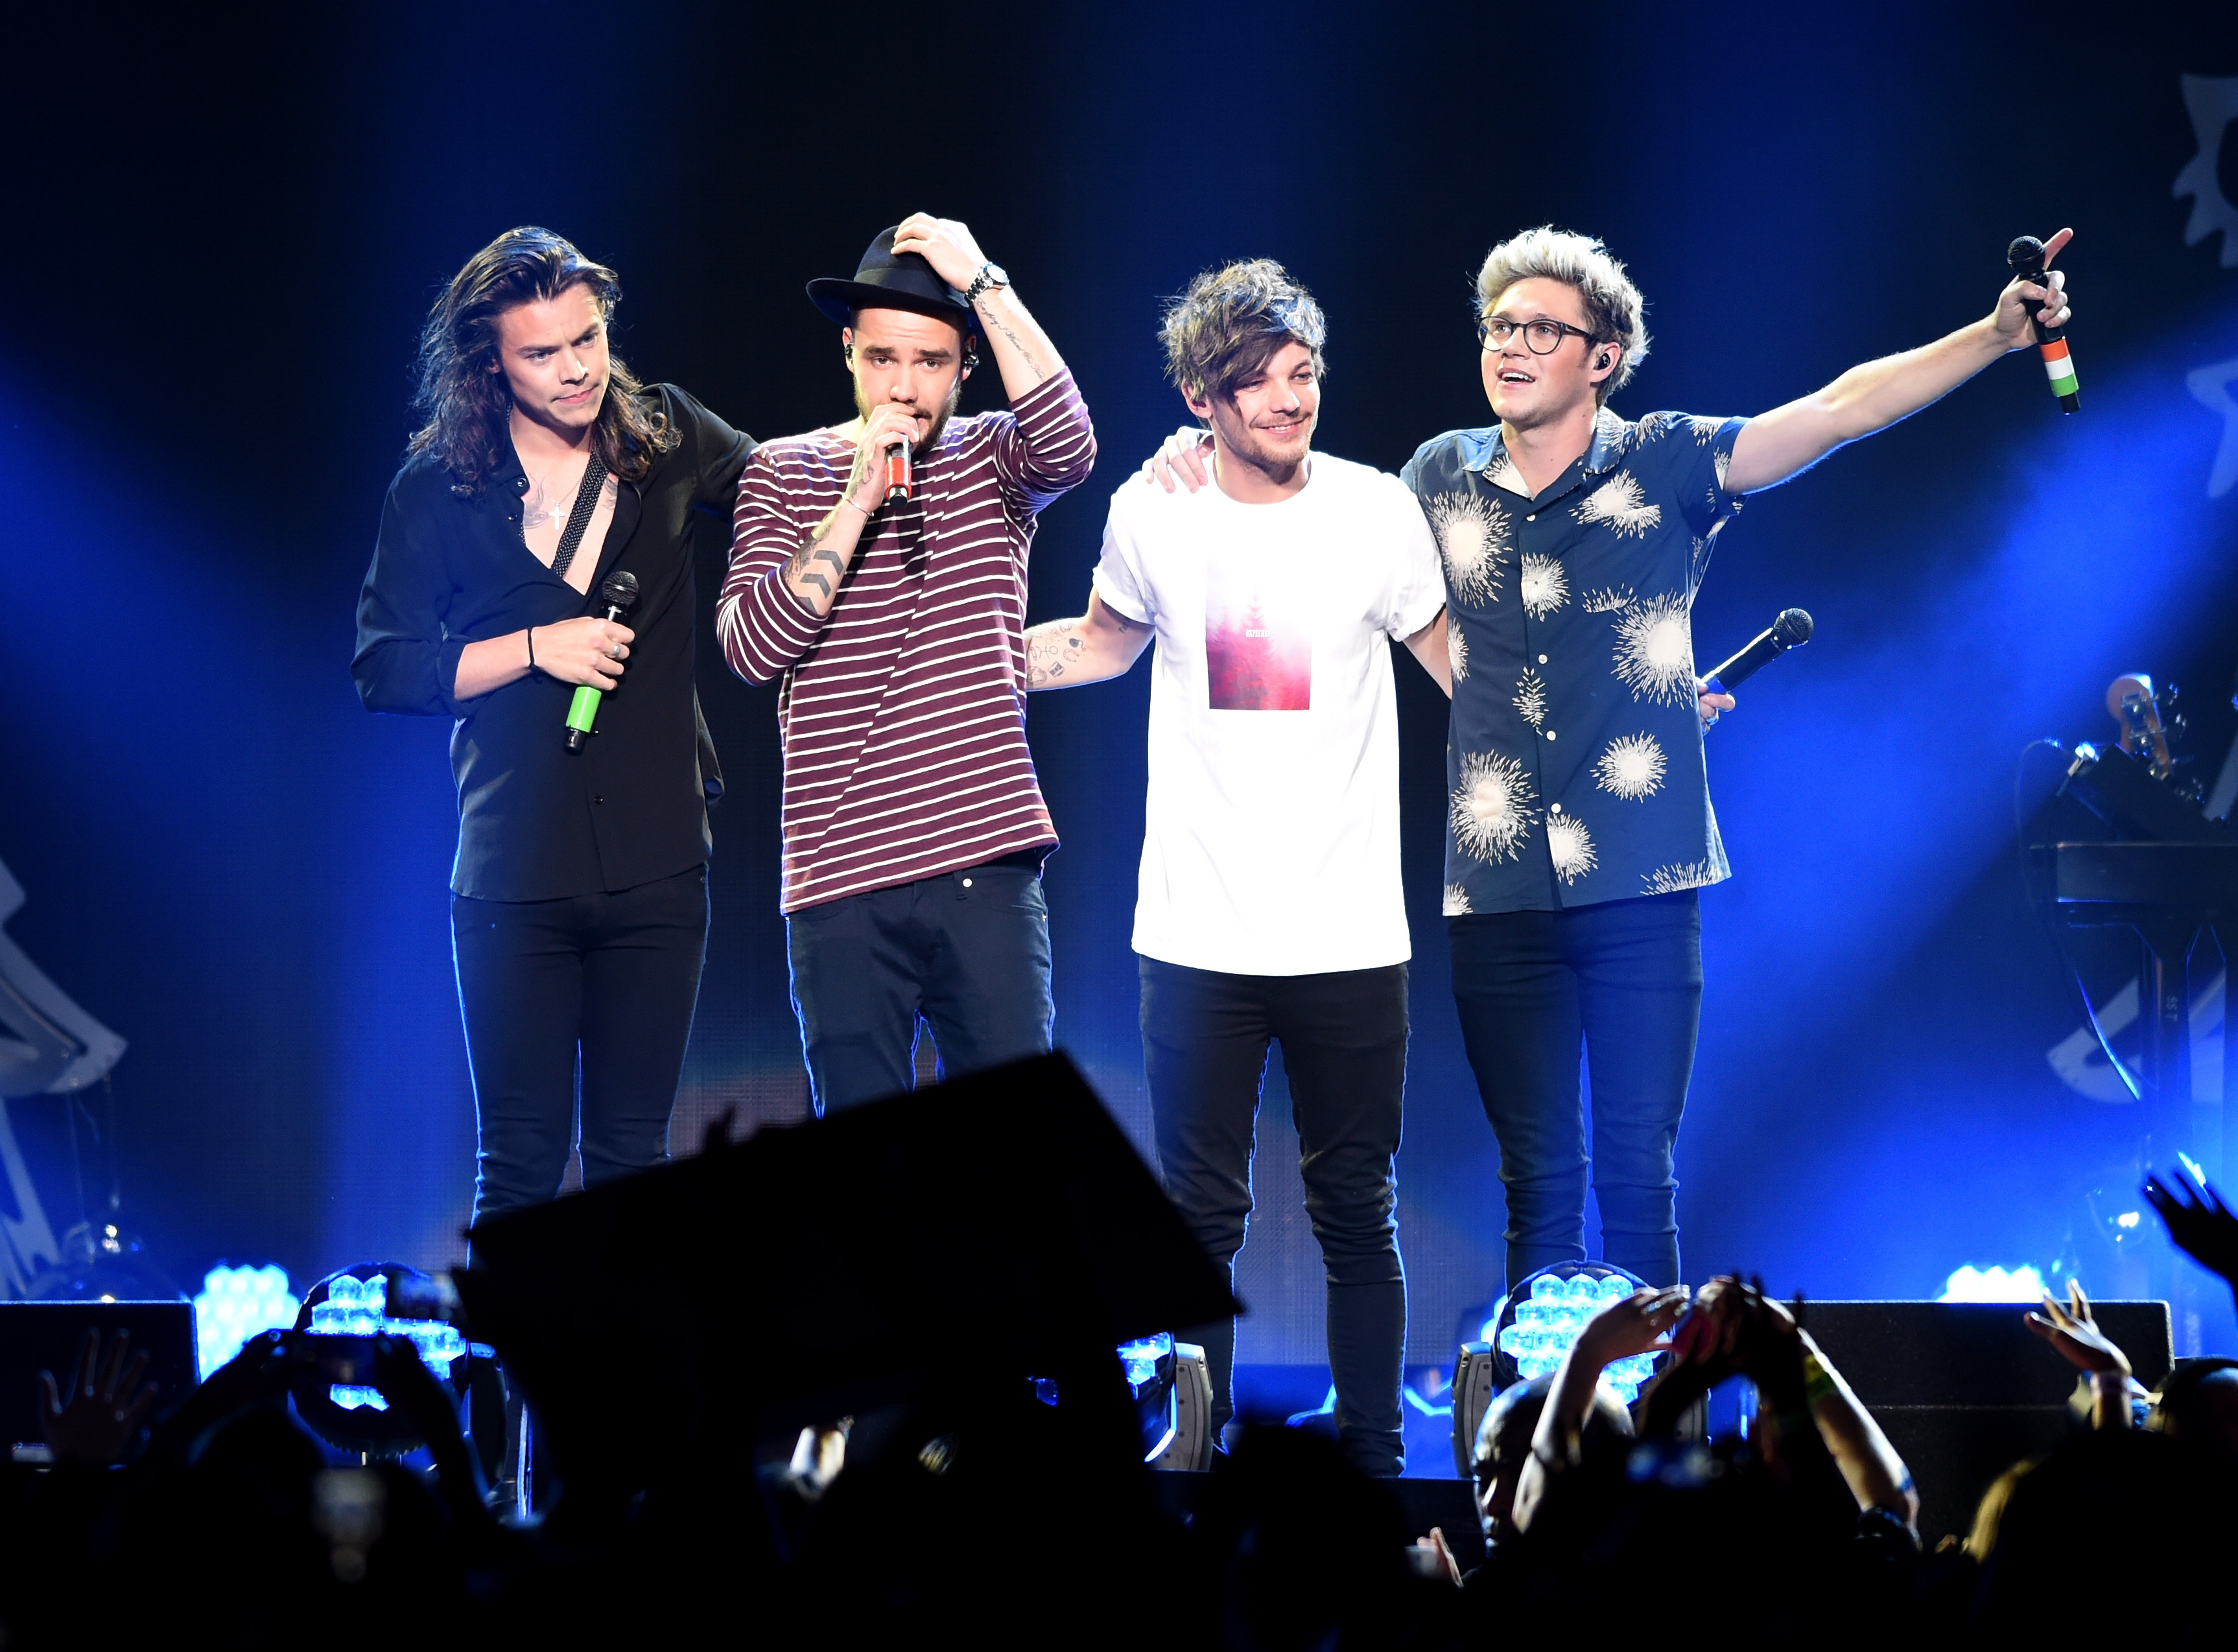 One Direction performing one of their last concerts ever at the 106.1 KISS FM Jingle Ball in December 2015.